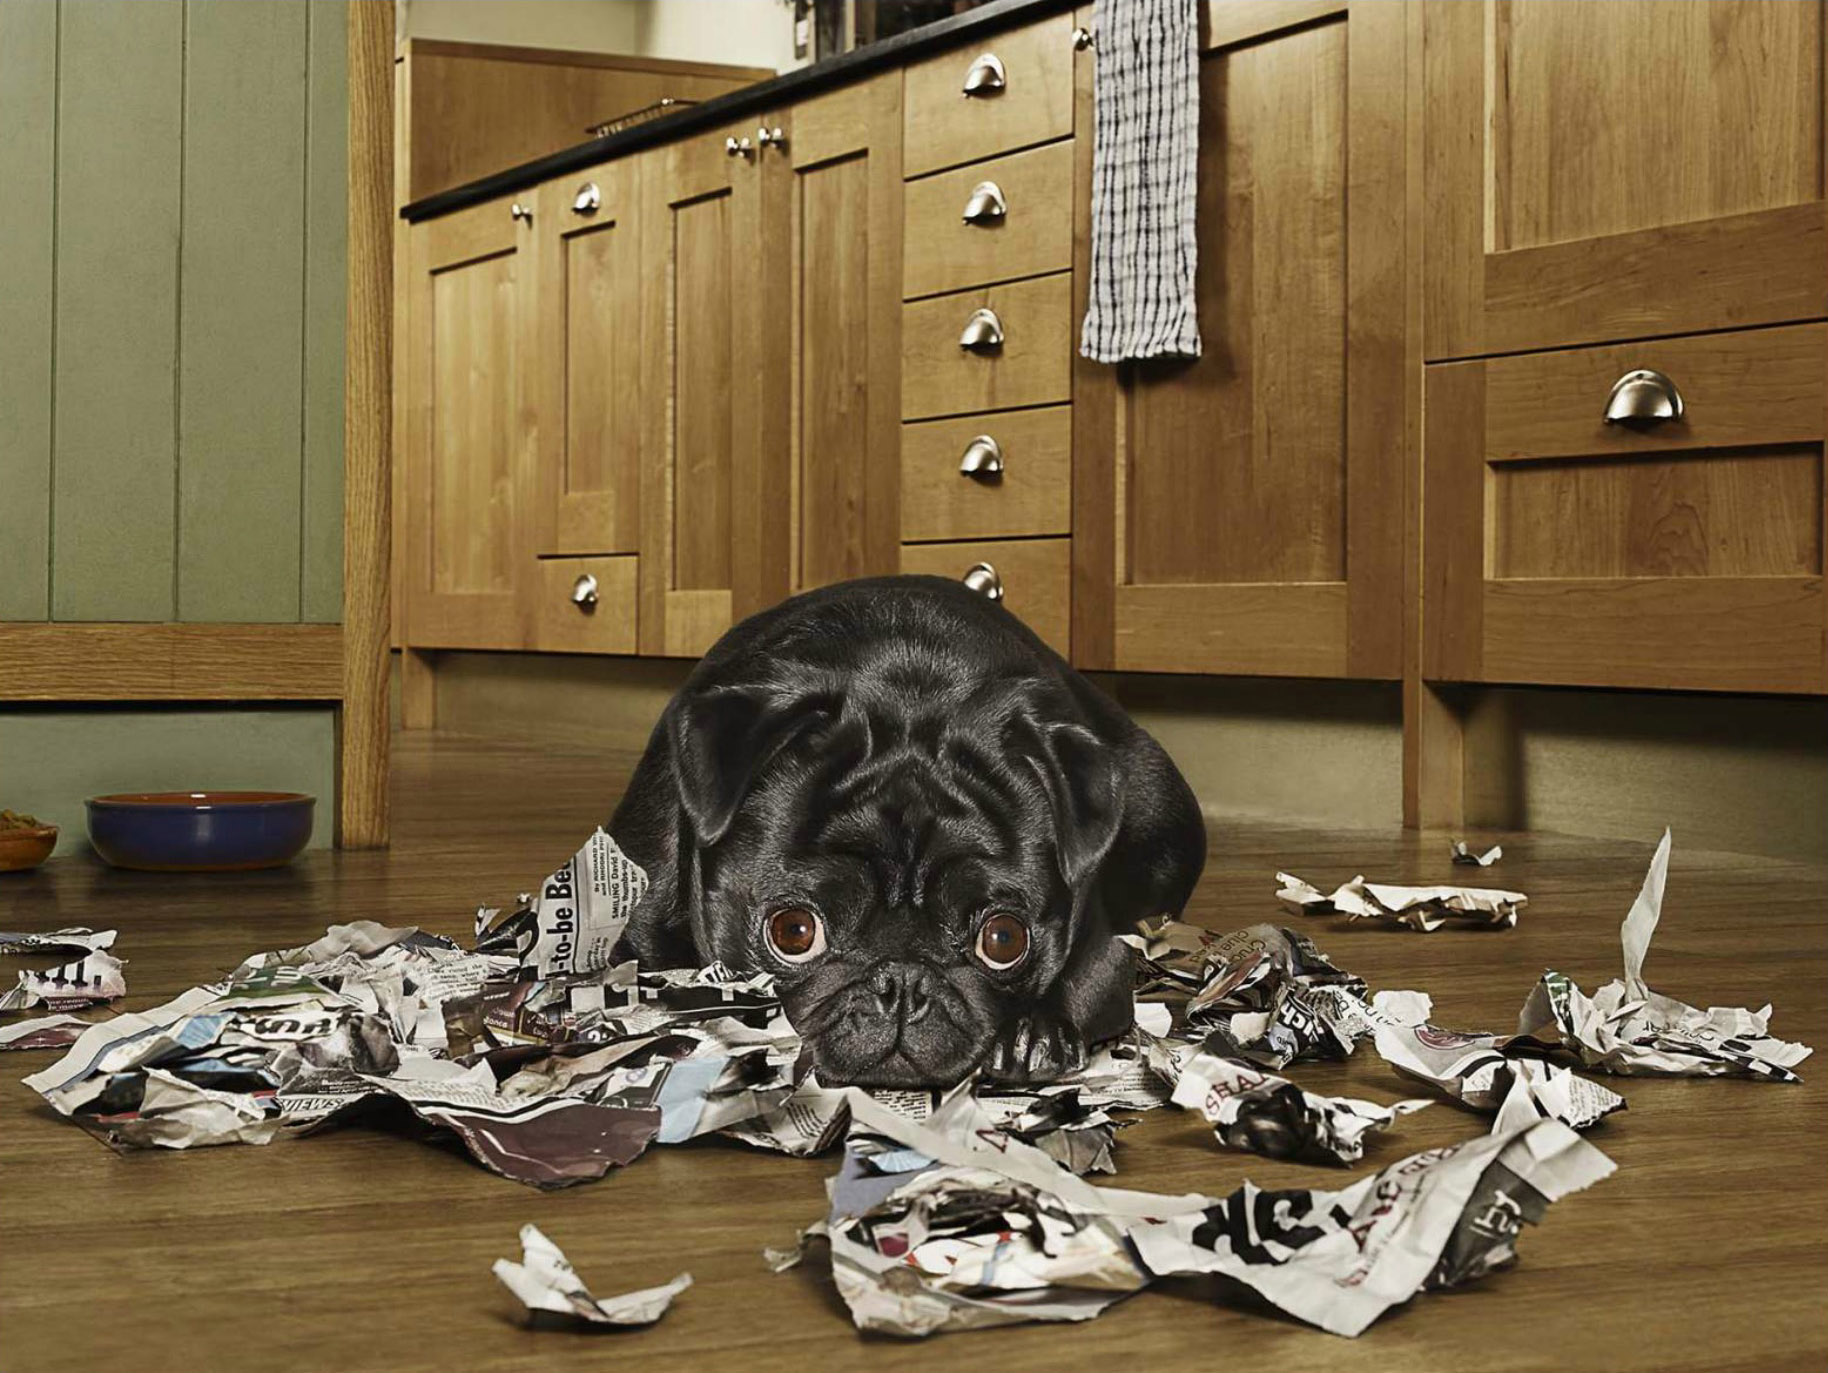 Dog (Black Pug) looking guilty after tearing up newspaper in the kitchen CopyrightGandeeVasanDog6